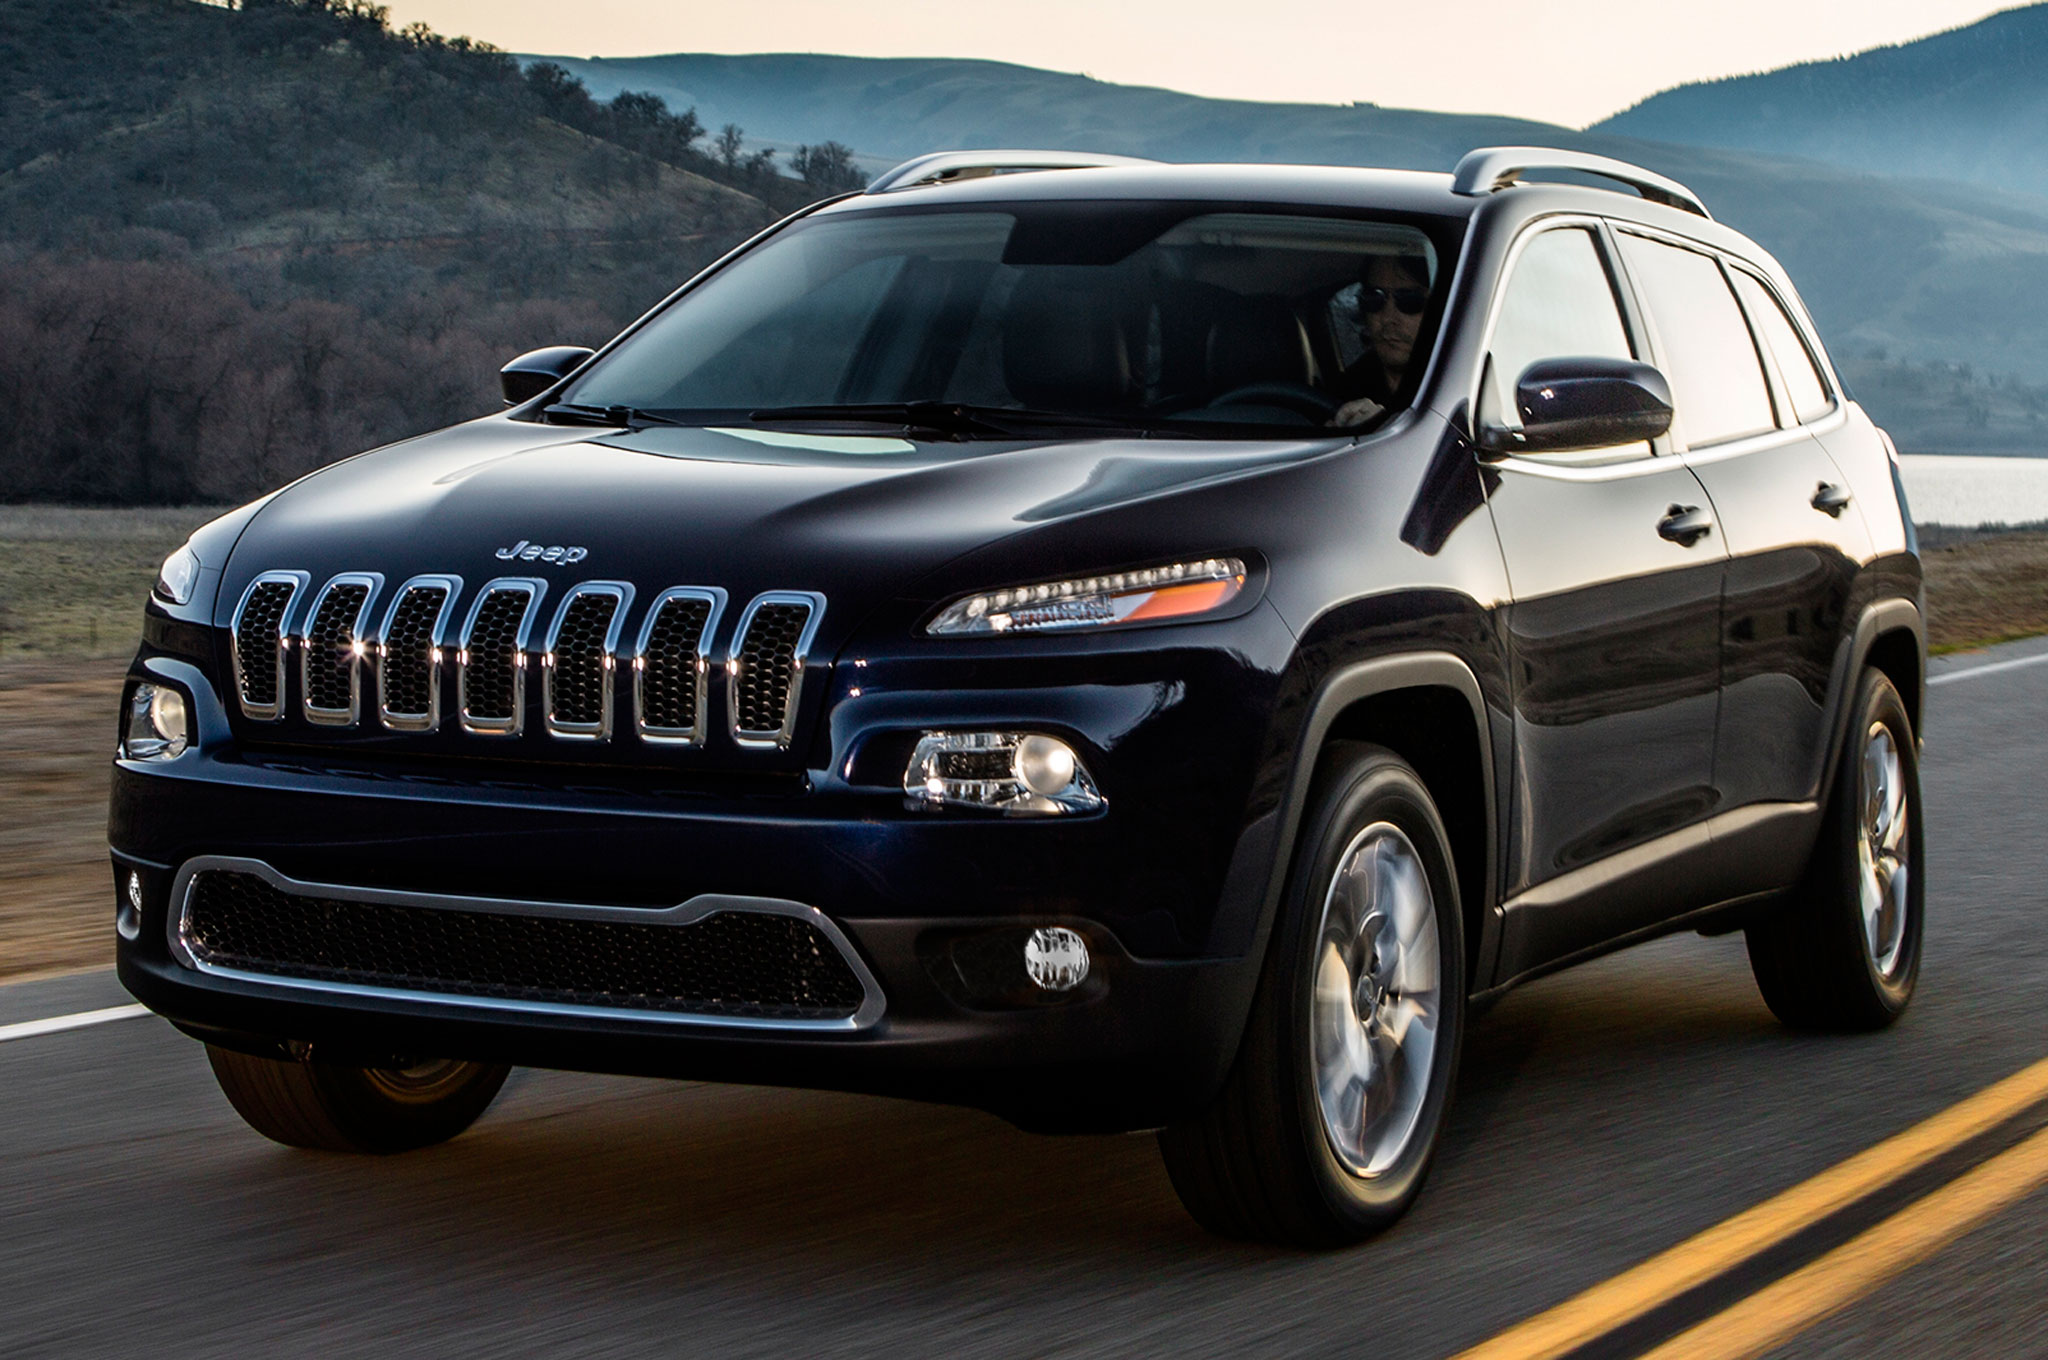 Awesome 2014 Jeep Cherokee I 4 FWD Rated 22/31 MPG, V 6 AWD At 19/27 MPG